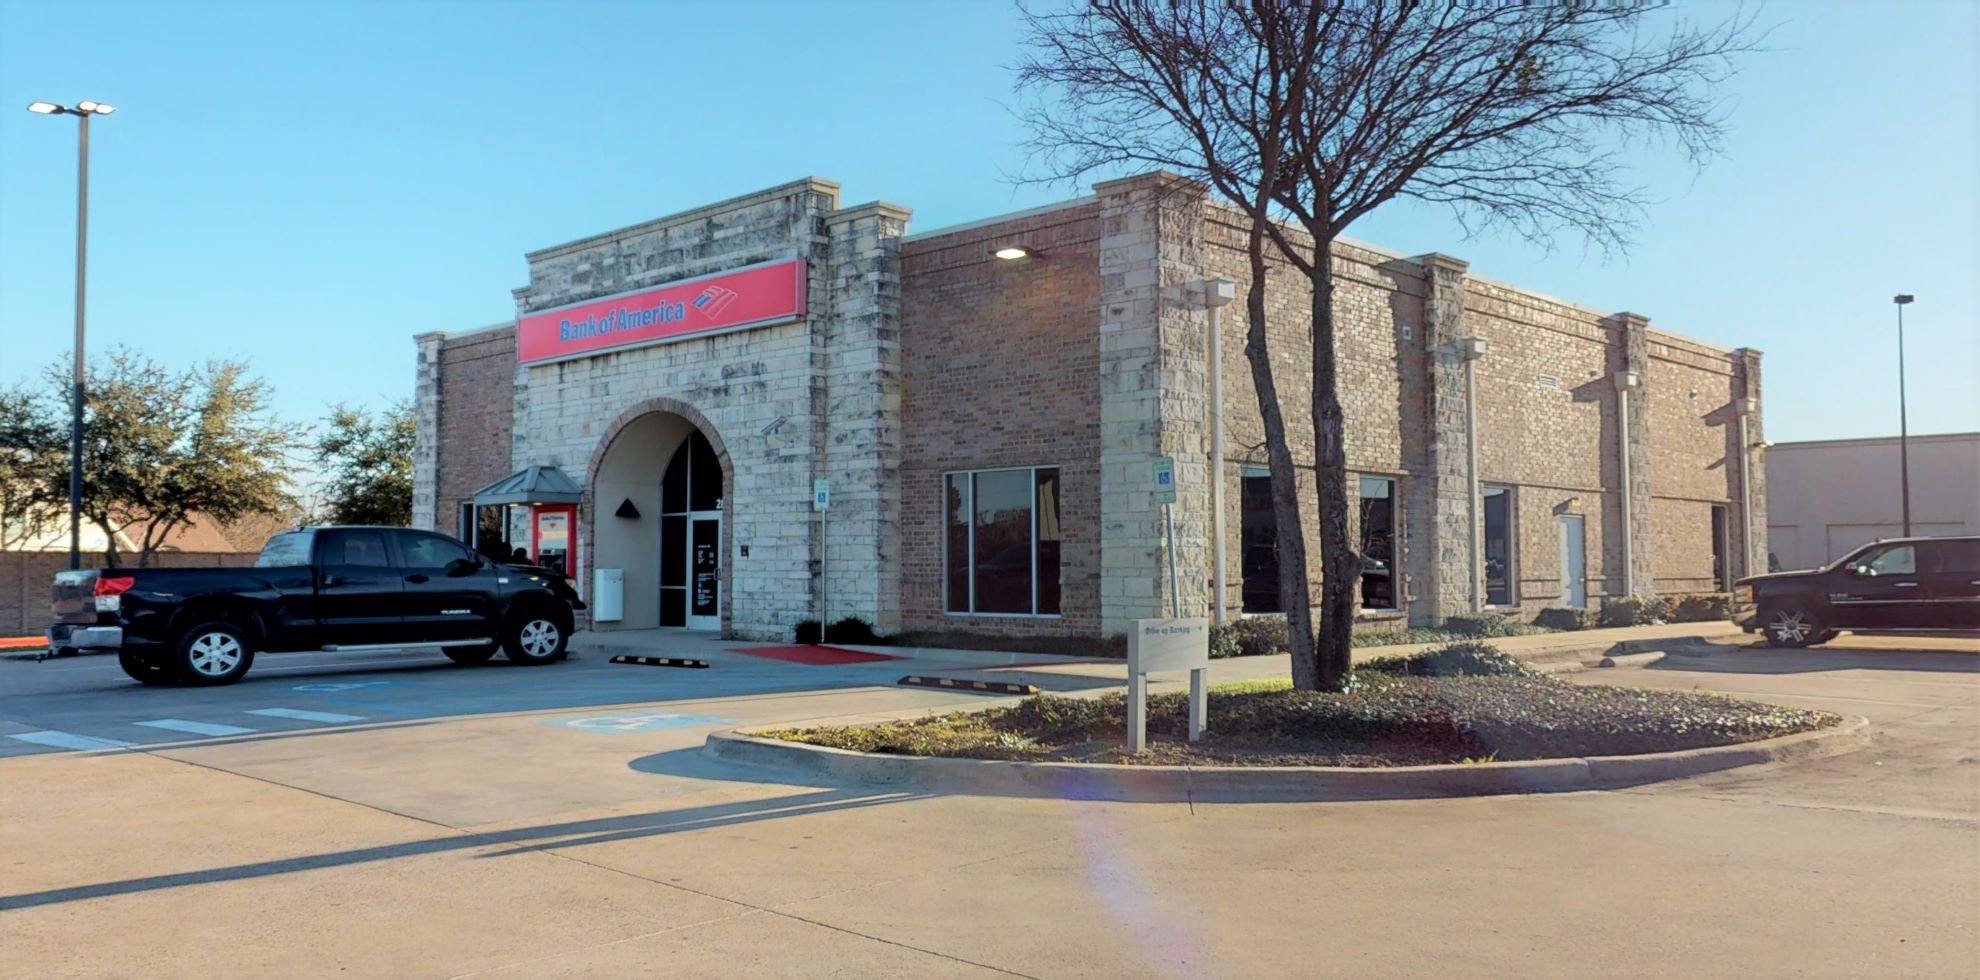 Bank of America financial center with drive-thru ATM | 2821 Matlock Rd, Mansfield, TX 76063